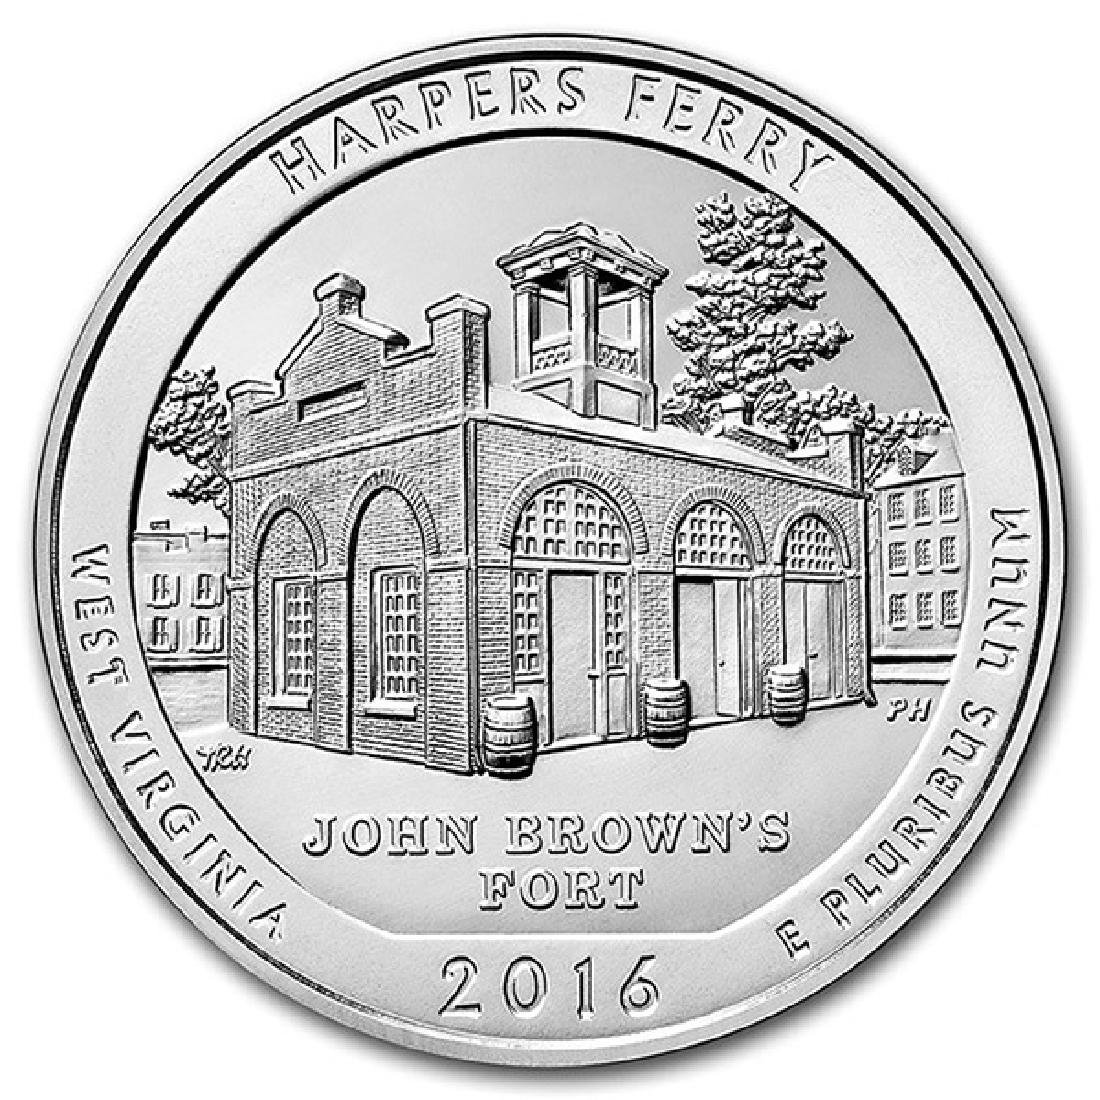 2016 Silver 5oz. Harpers Ferry ATB